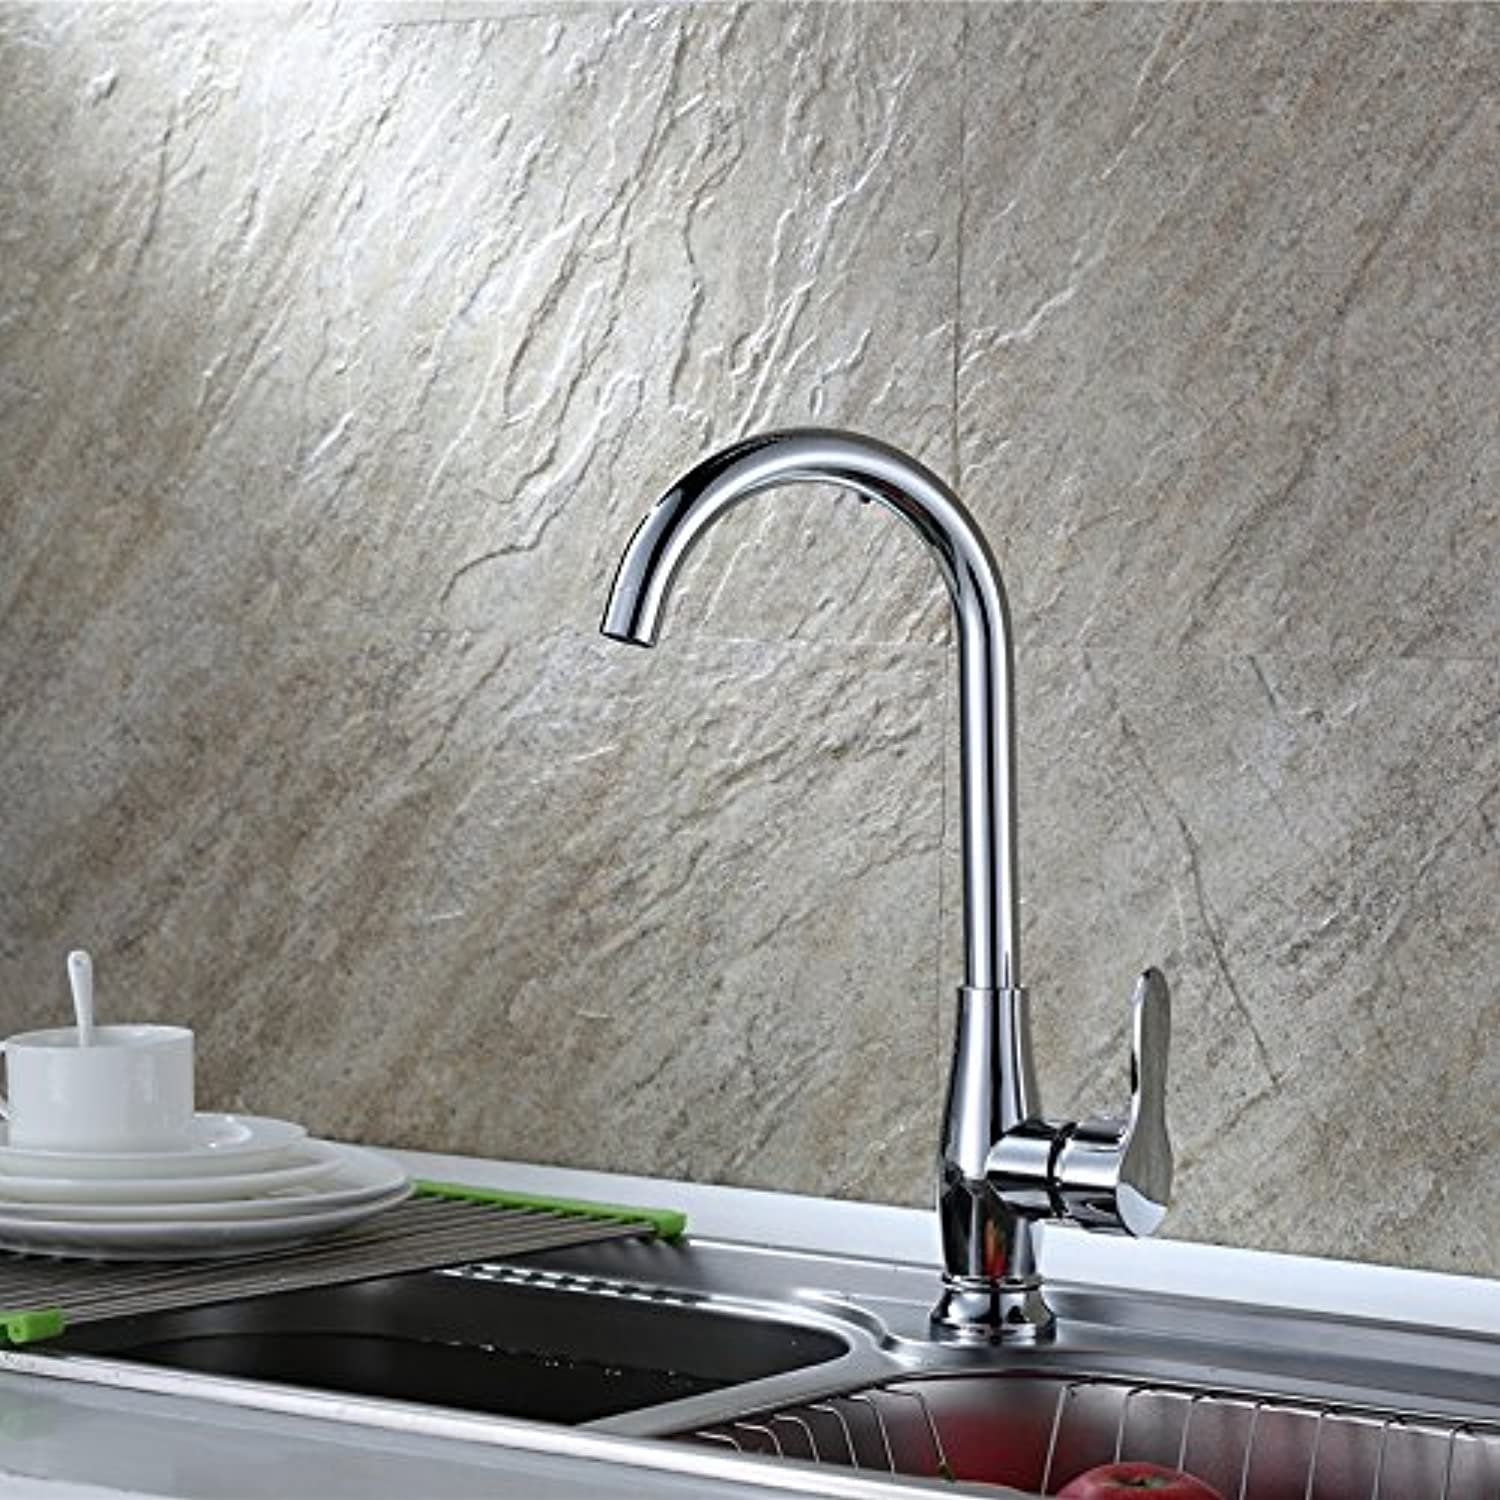 Bathroom Sink Basin Lever Mixer Tap Side Basin Cold and Hot Water Faucet Cold and Hot Water Faucet Single-Hole Kitchen redary Mixed Water Dishwash Basin